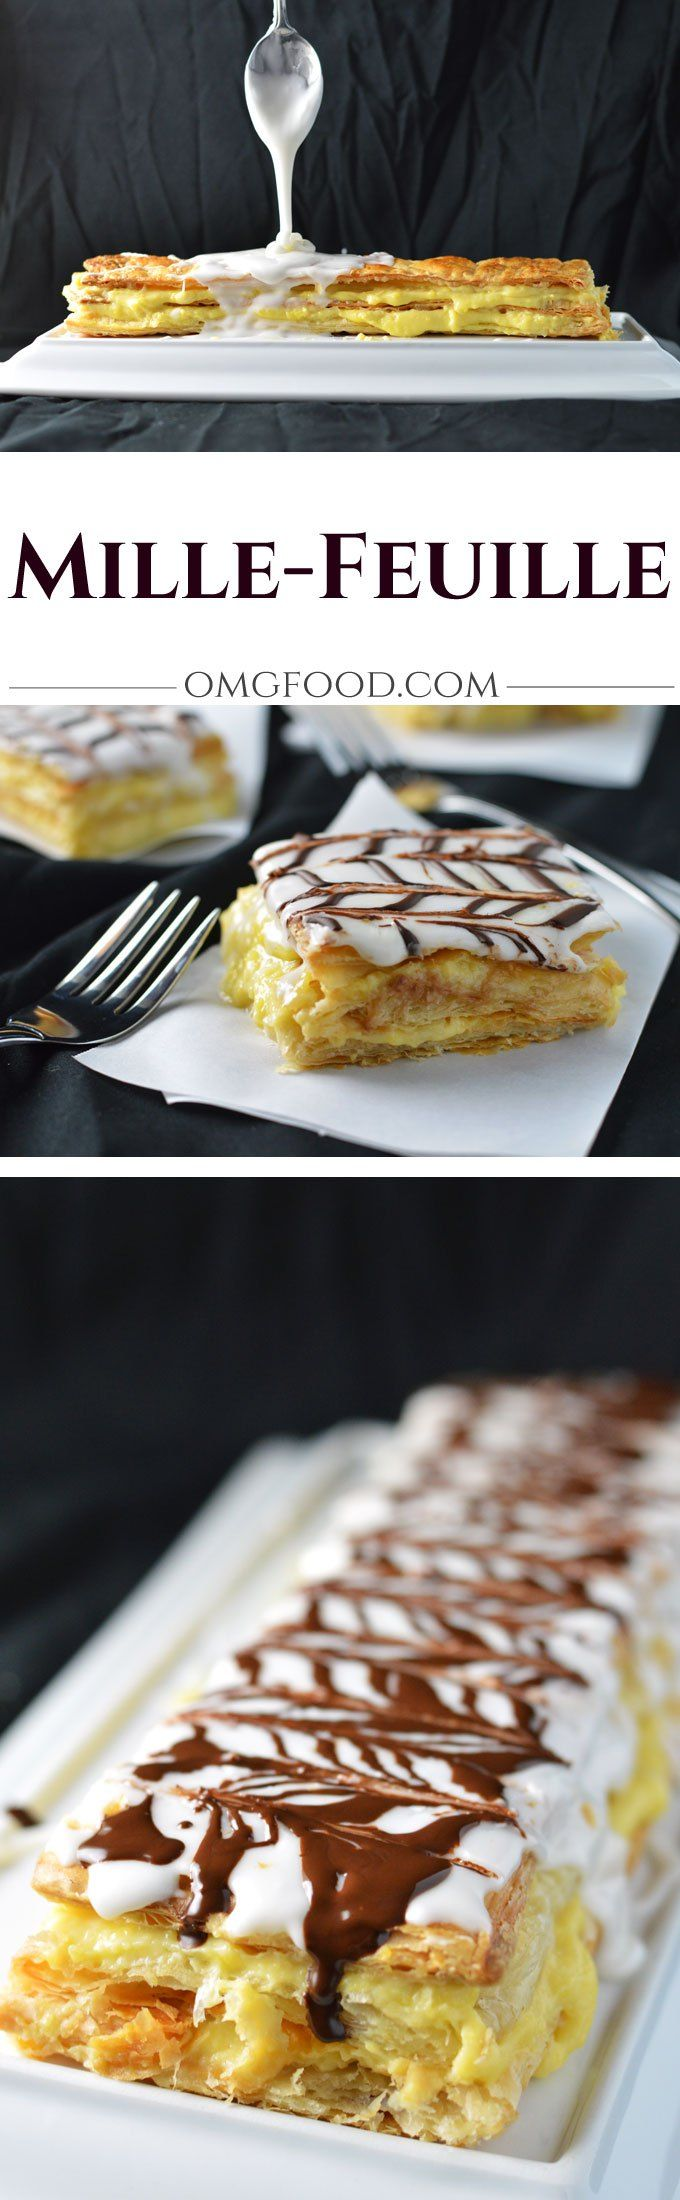 Mille-Feuille (Napoleon) - Flaky puff pastry with cream filling, topped with icing, and drizzled with dark chocolate.   omgfood.com